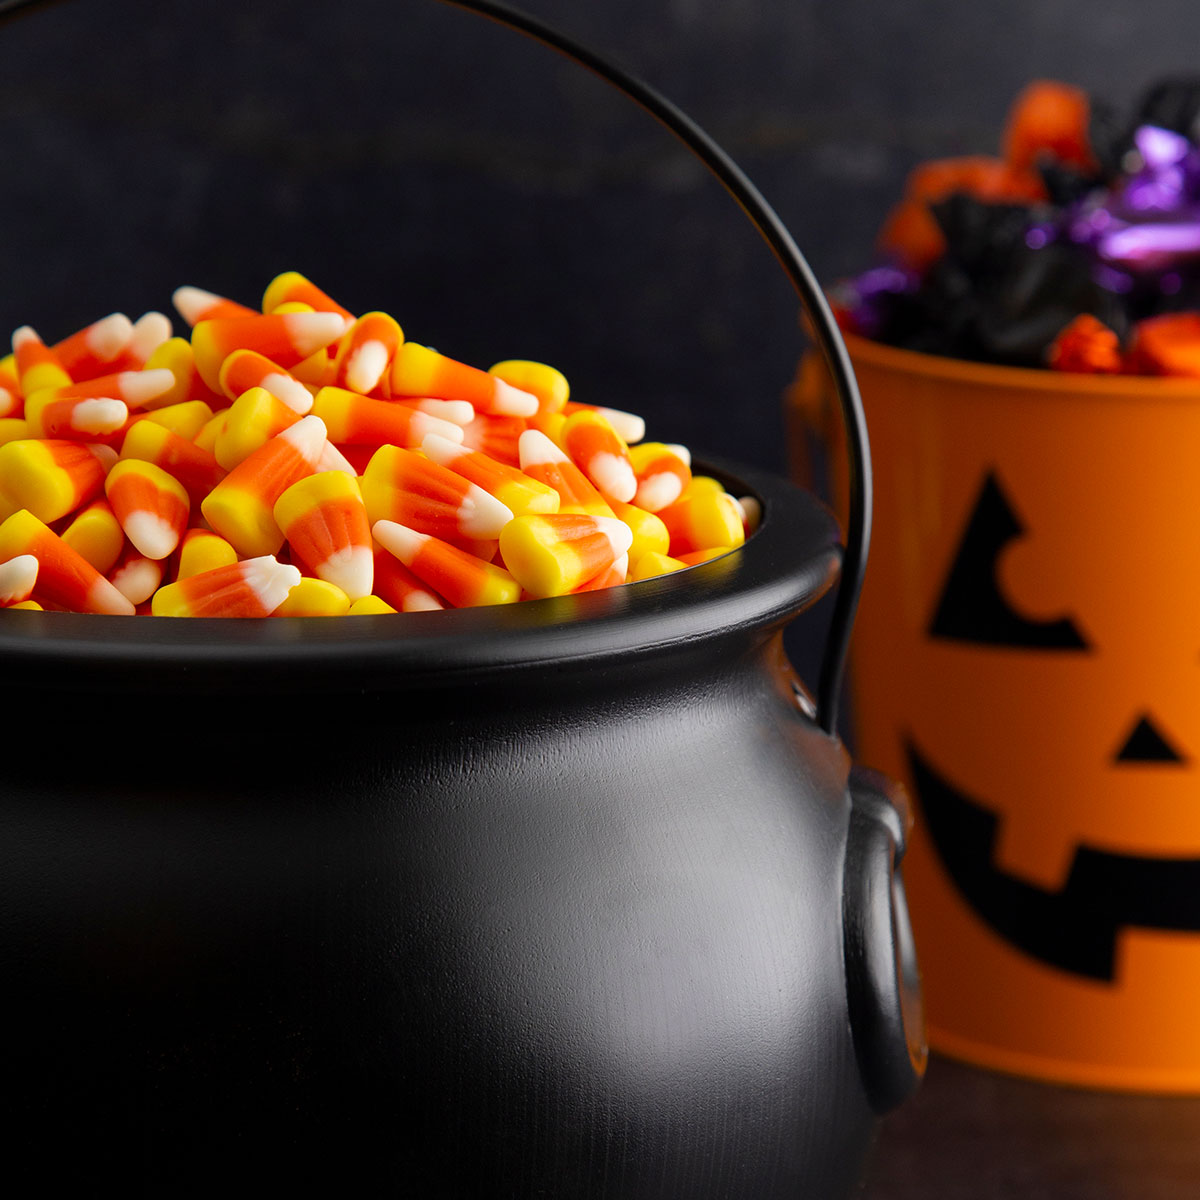 image showing a cauldron full of sweets